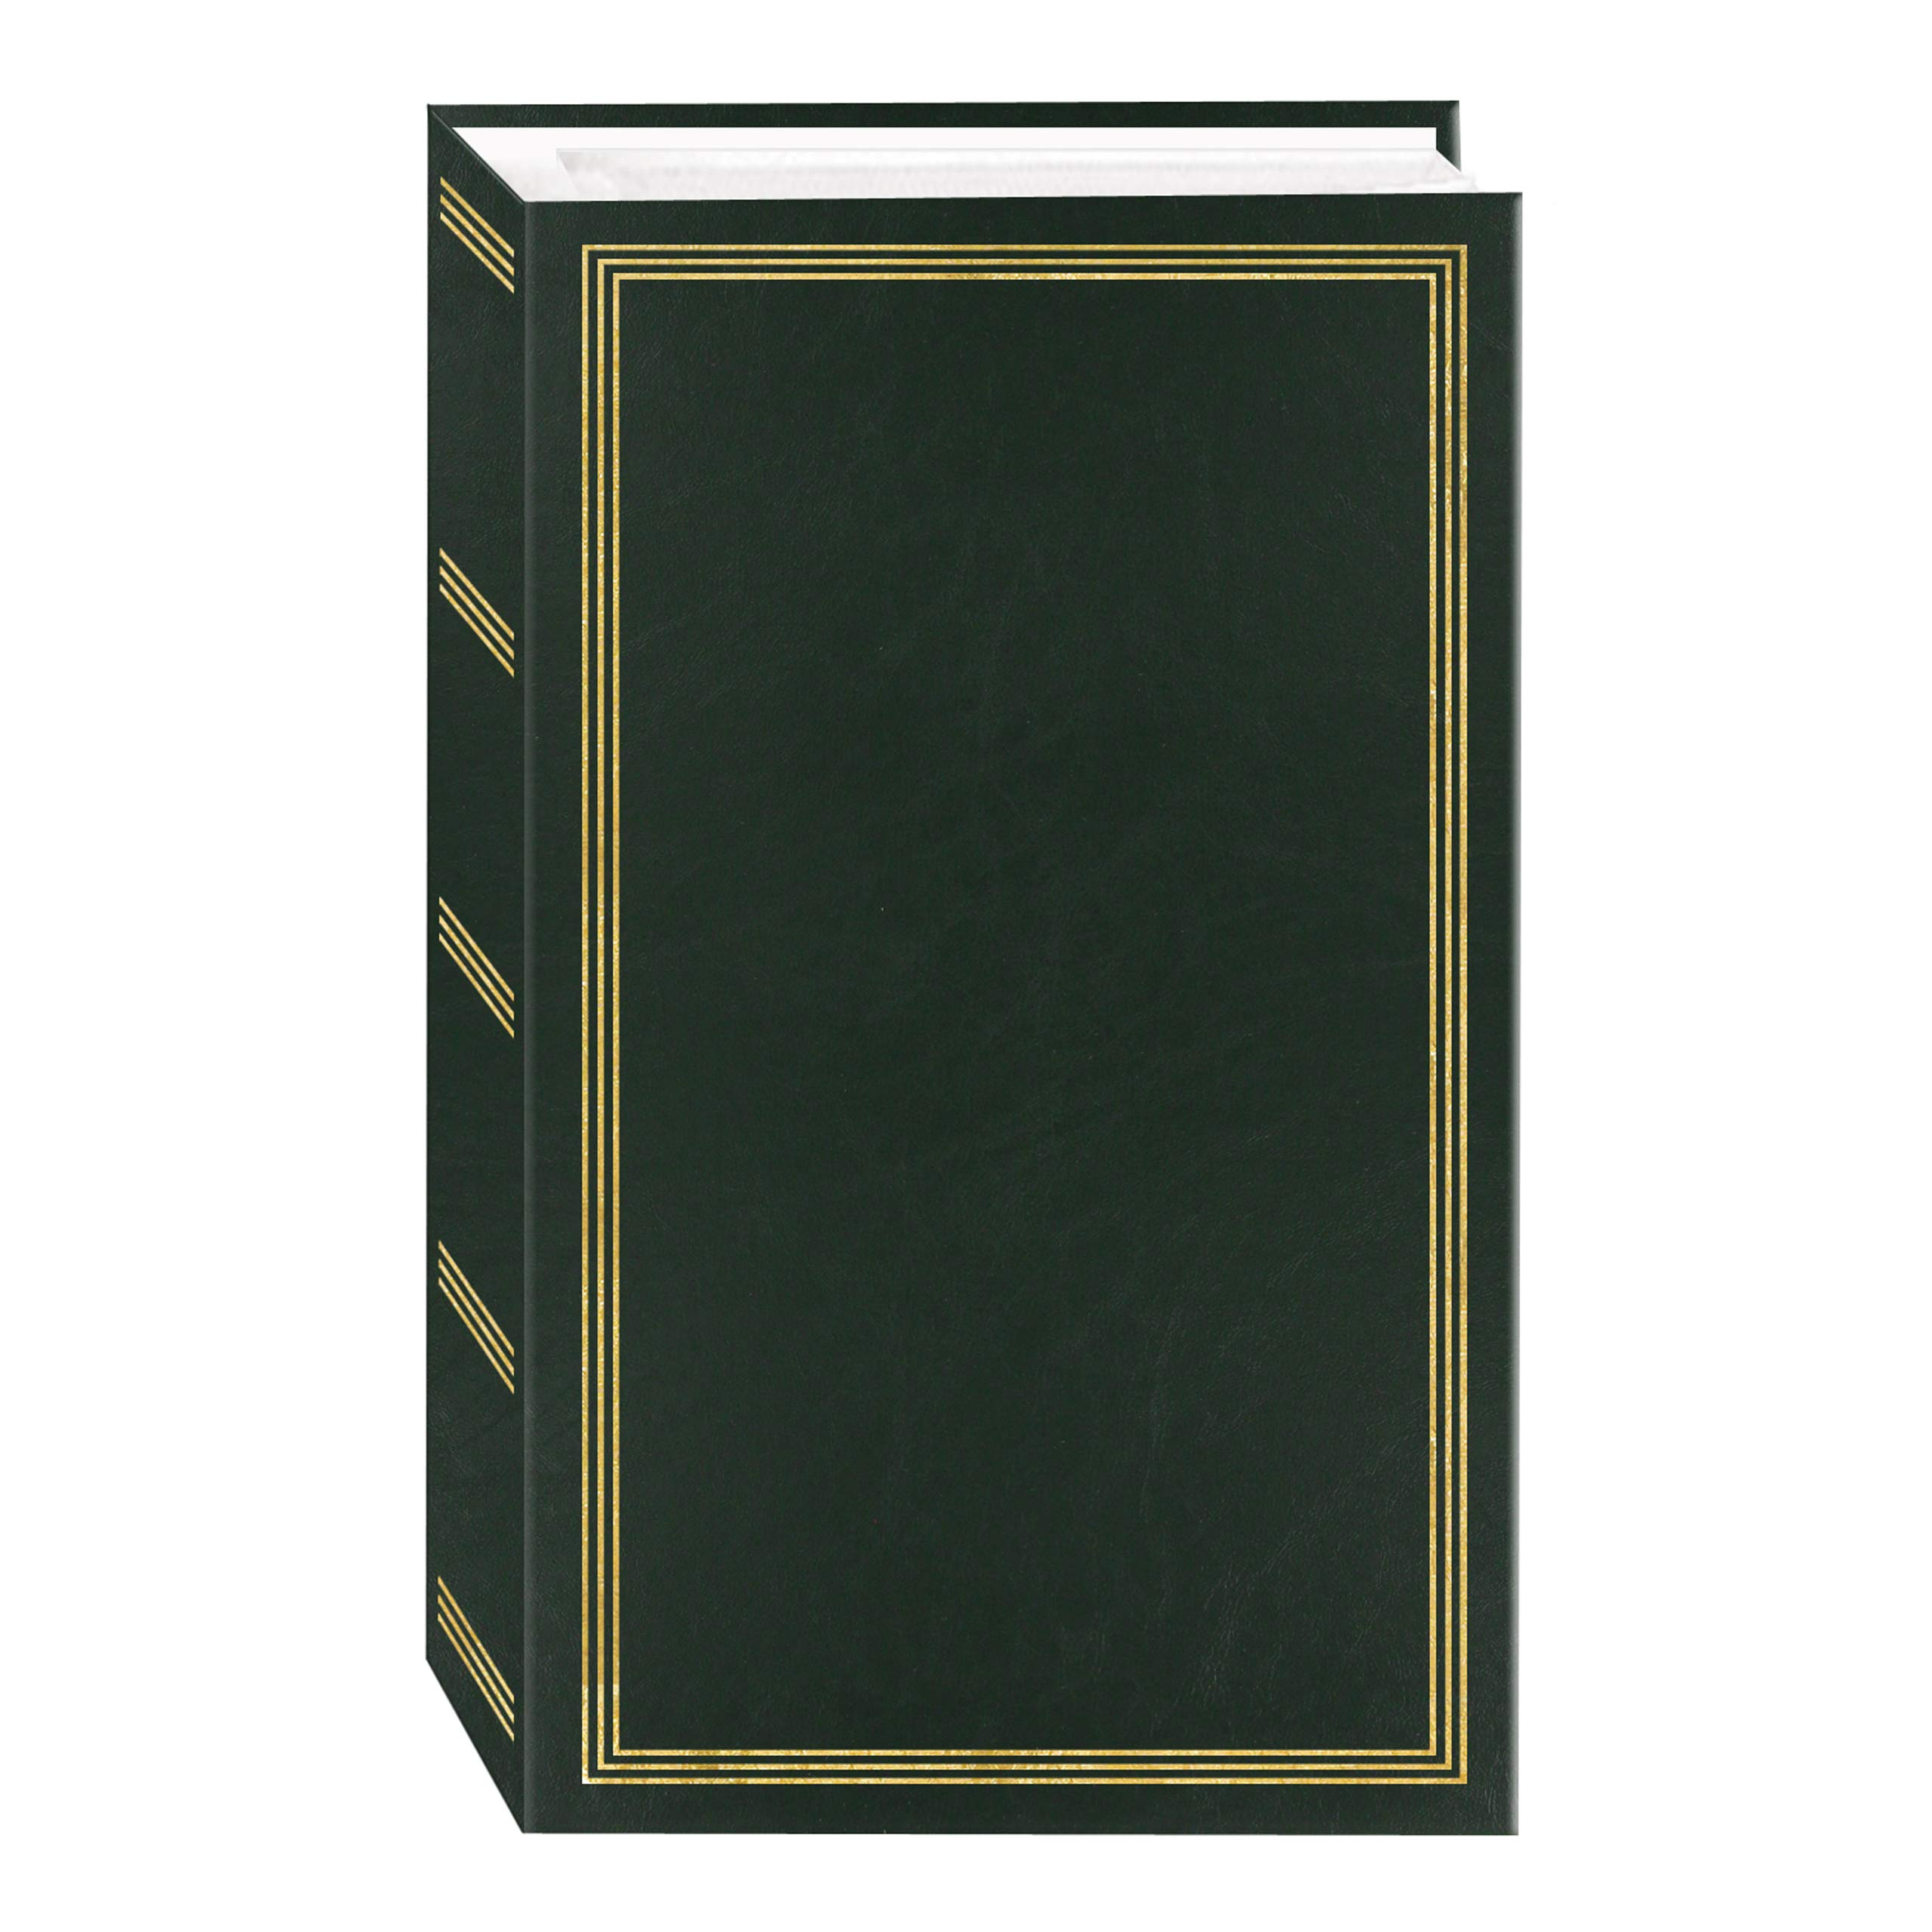 3-Ring Photo Album 504 Pockets Hold 4x6 Photos, Hunter Green by Pioneer Photo Albums